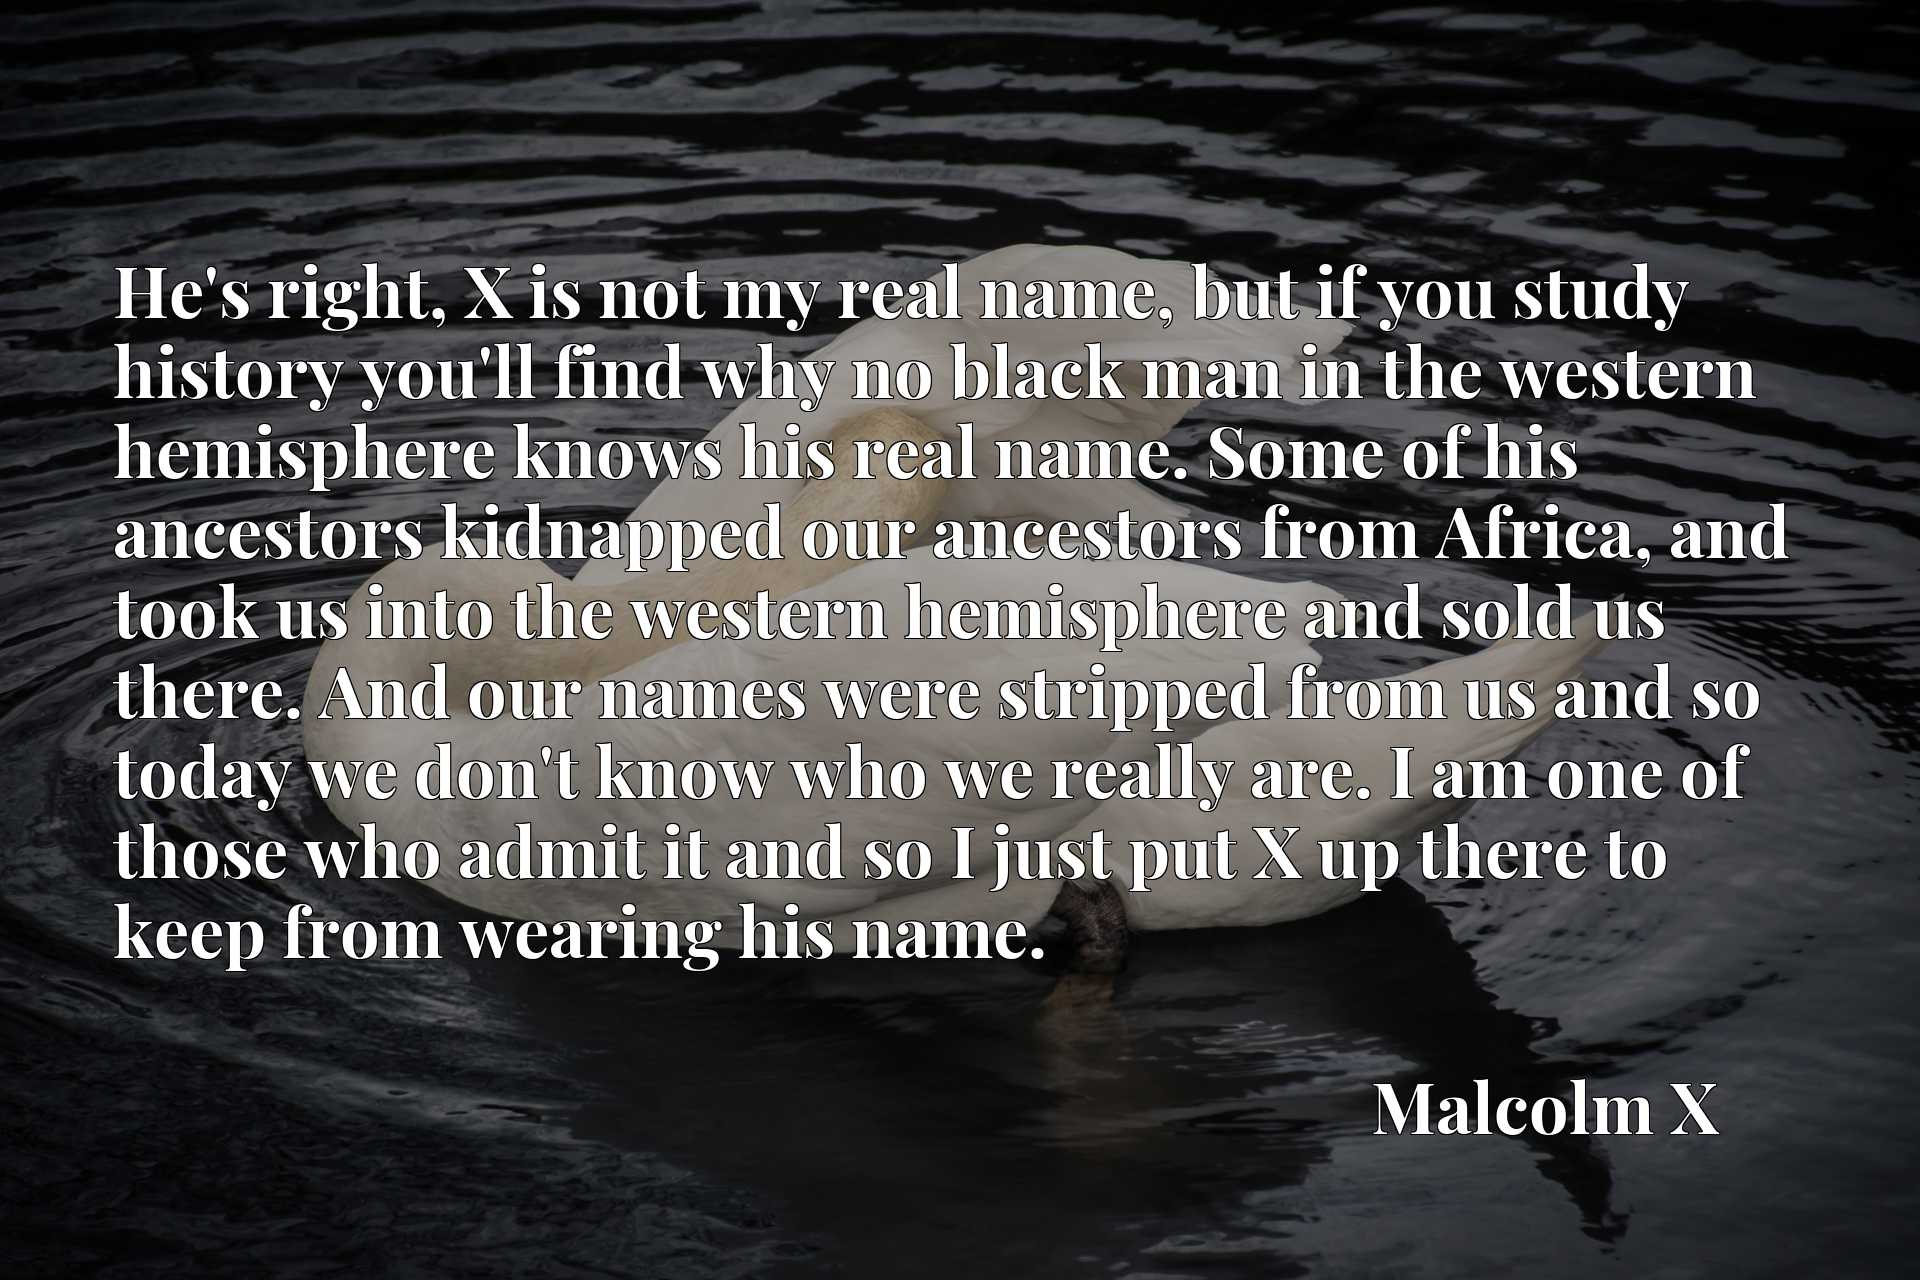 He's right, X is not my real name, but if you study history you'll find why no black man in the western hemisphere knows his real name. Some of his ancestors kidnapped our ancestors from Africa, and took us into the western hemisphere and sold us there. And our names were stripped from us and so today we don't know who we really are. I am one of those who admit it and so I just put X up there to keep from wearing his name.